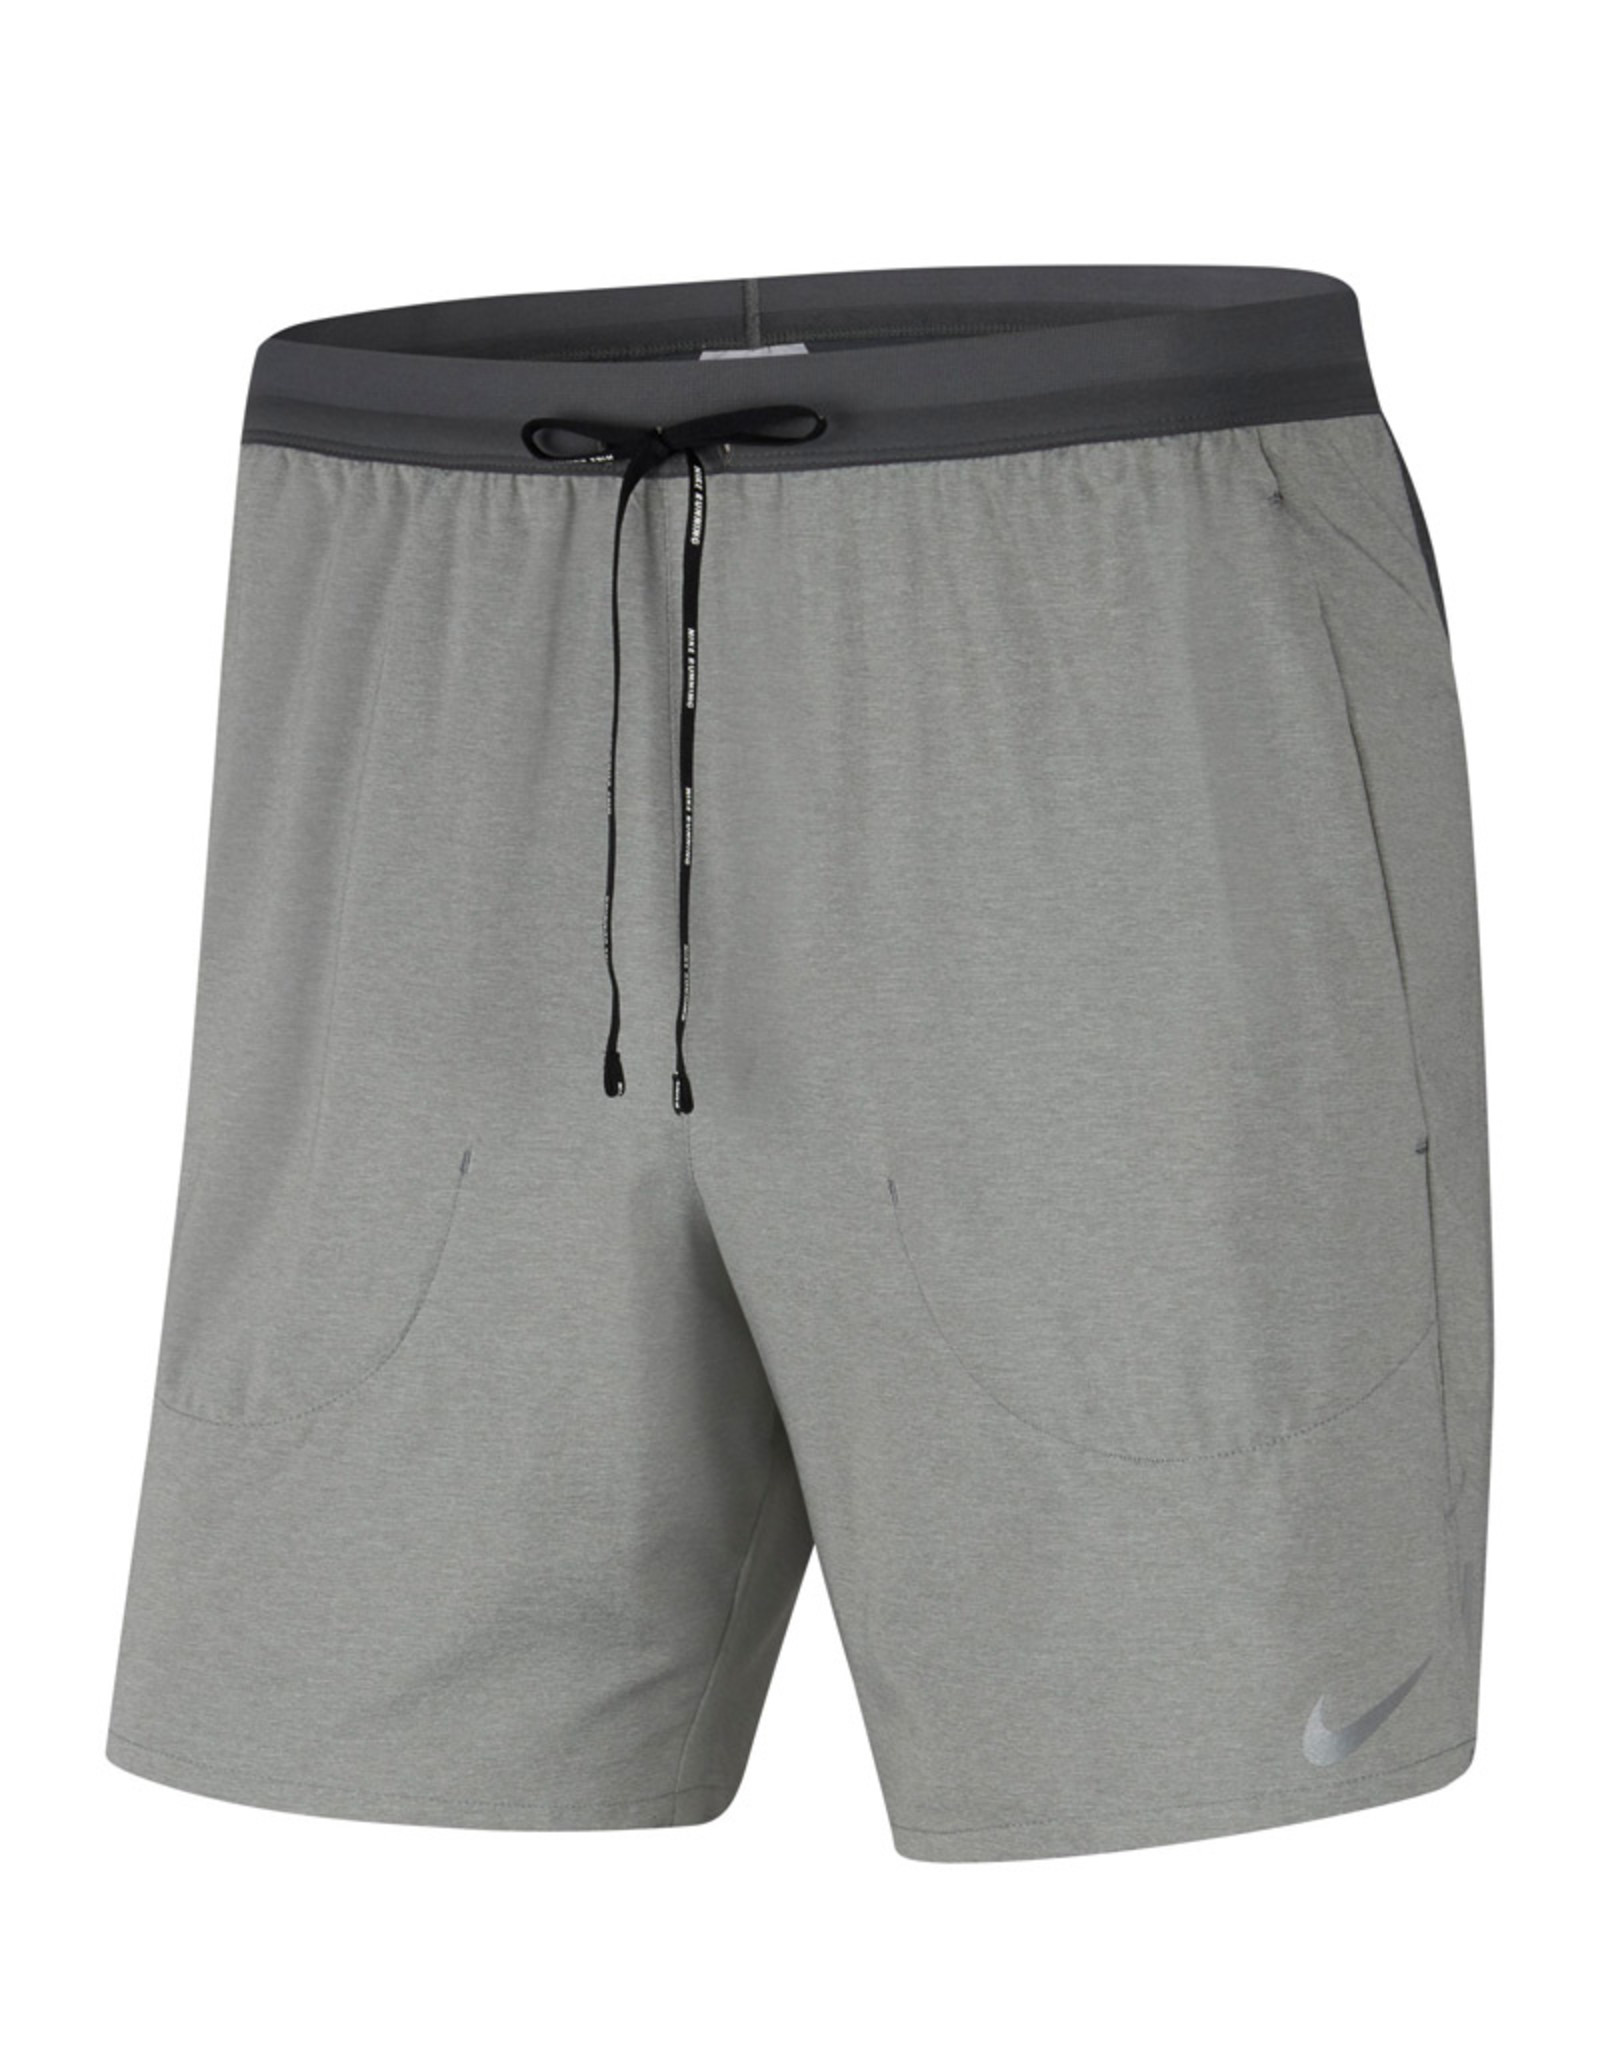 NIKE MENS FLEX STRIDE 7 IN SHORT BRIEF